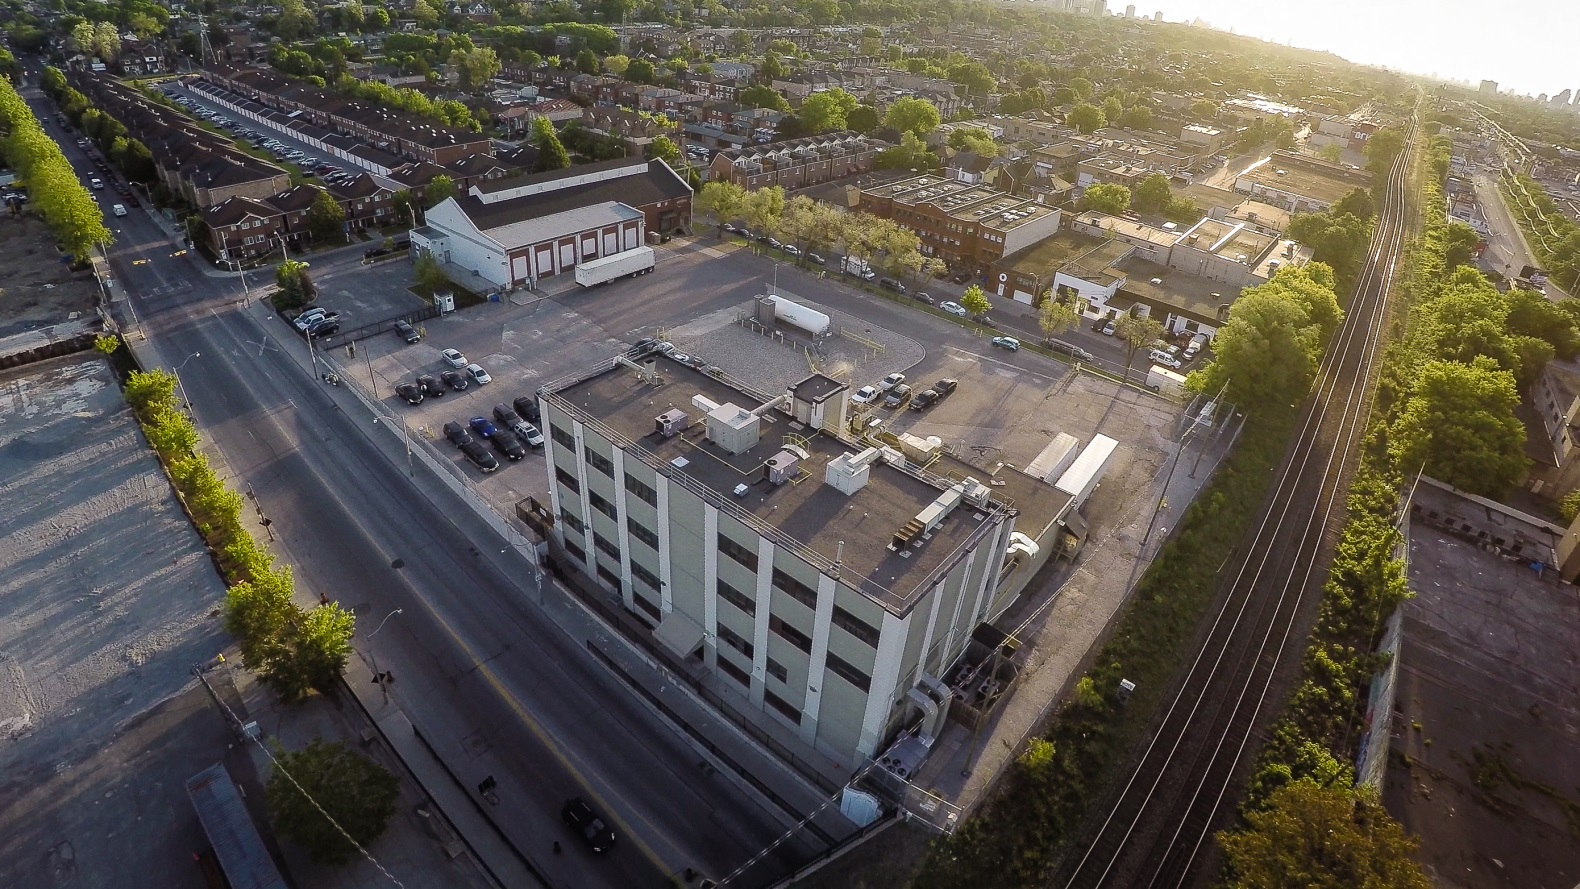 This picture shows an aerial view of the GEH-C Toronto  facility which occupies a small site in the city of Toronto